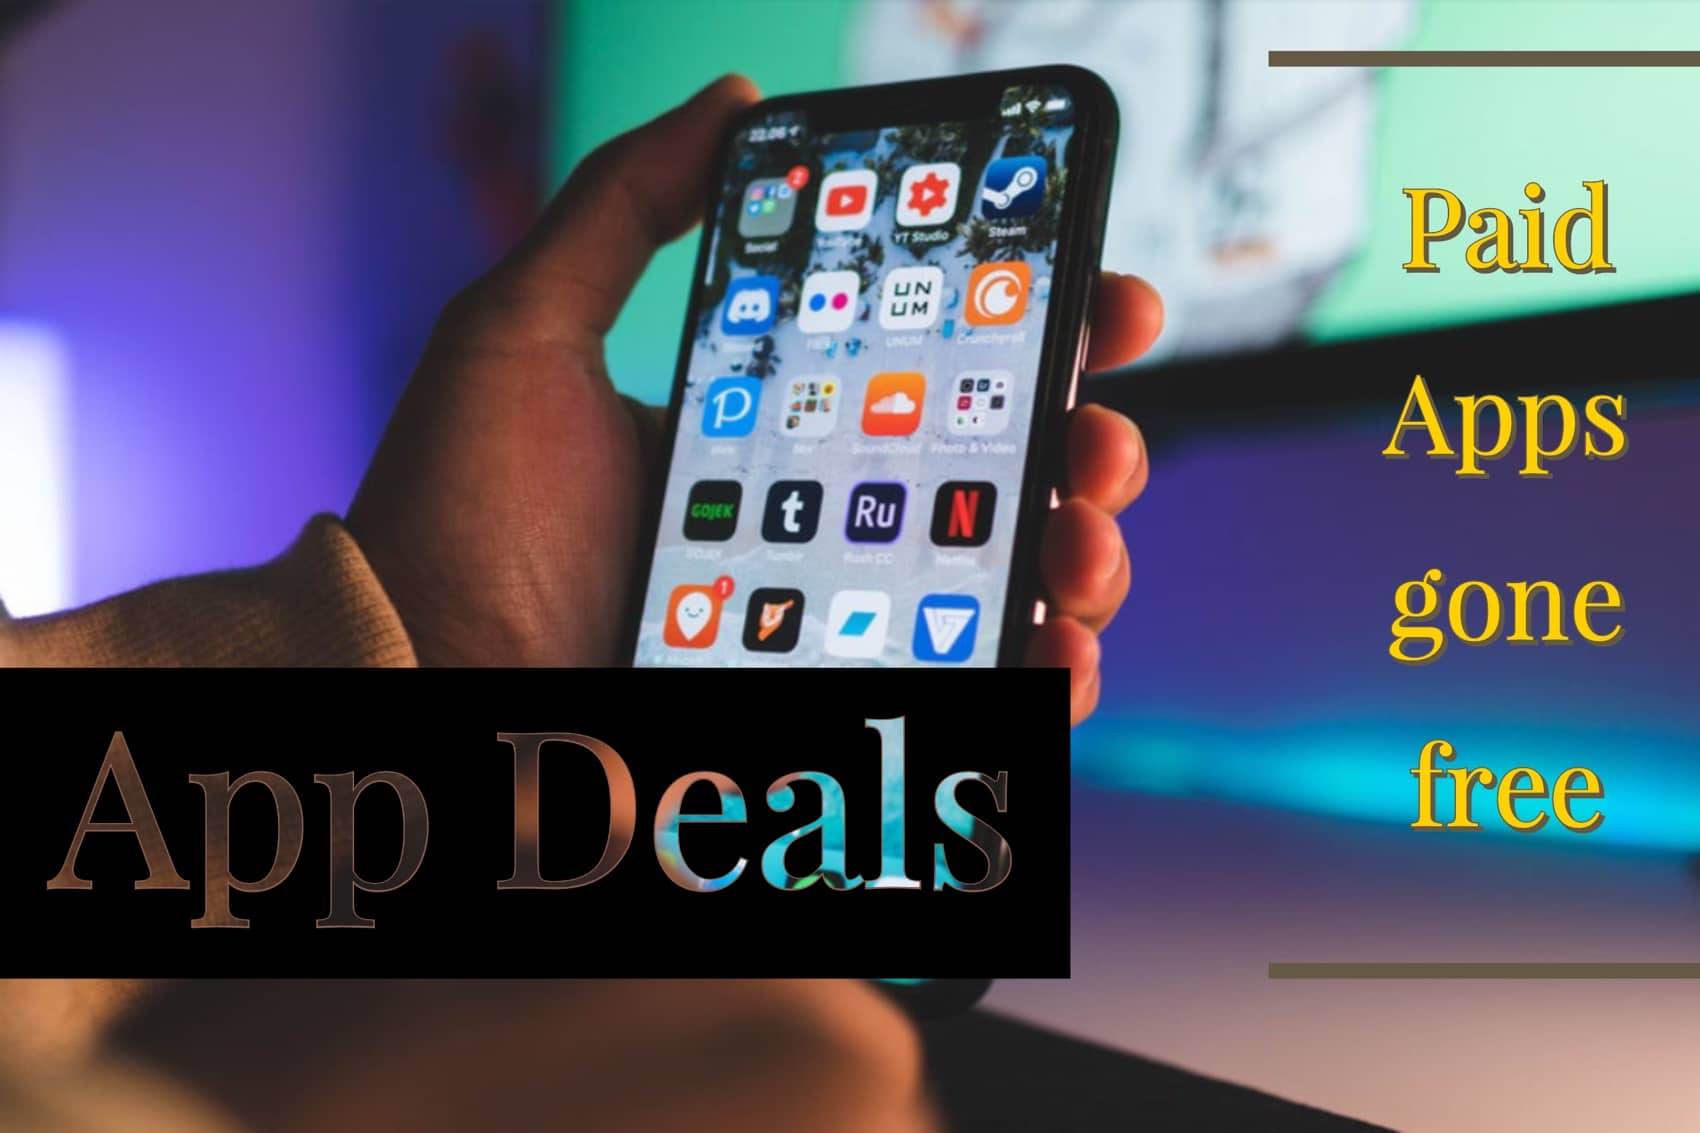 7 Paid iPhone & iPad Apps Gone Free Today [July 18]